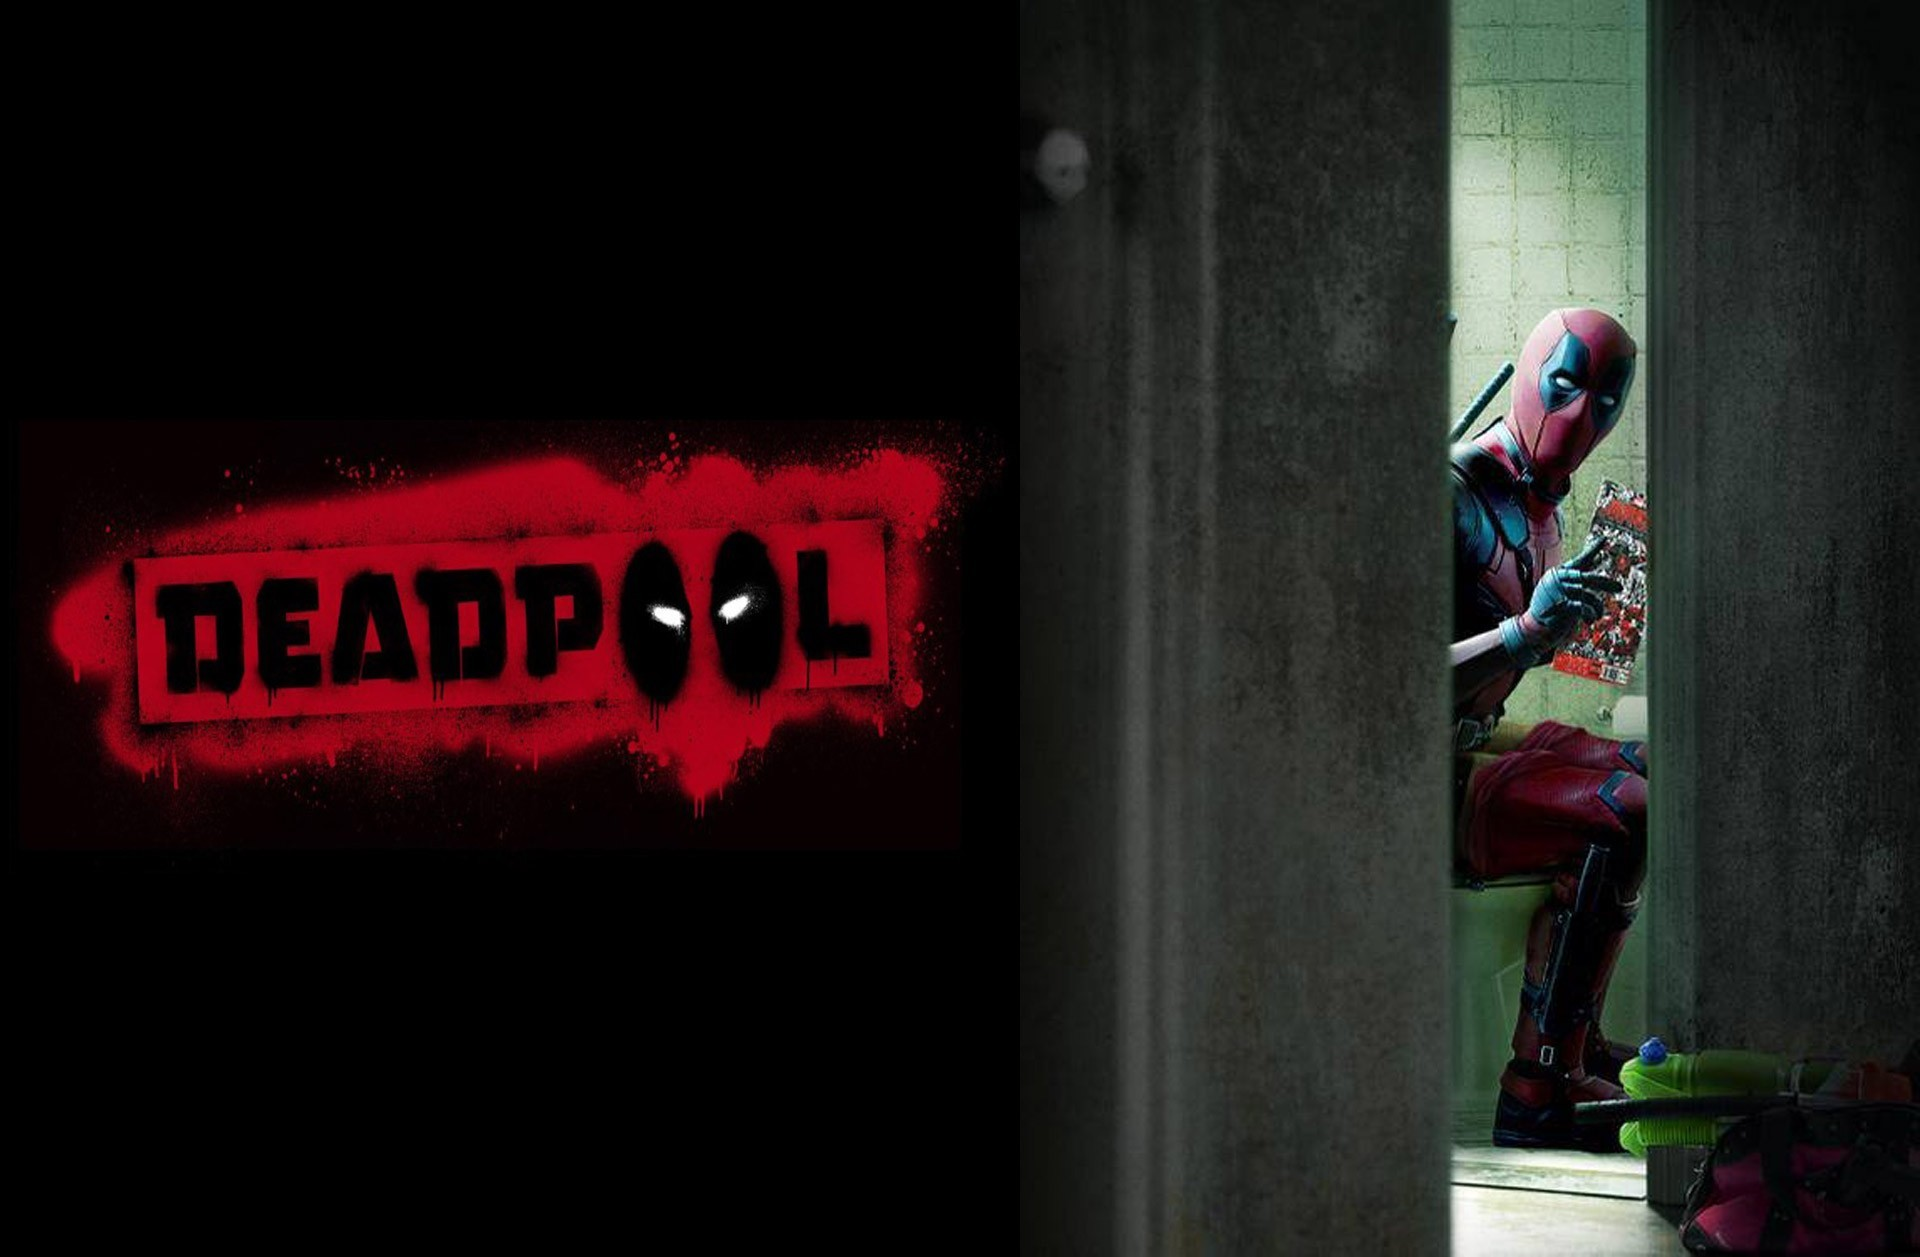 1920x1080 Deadpool Wallpaper HD